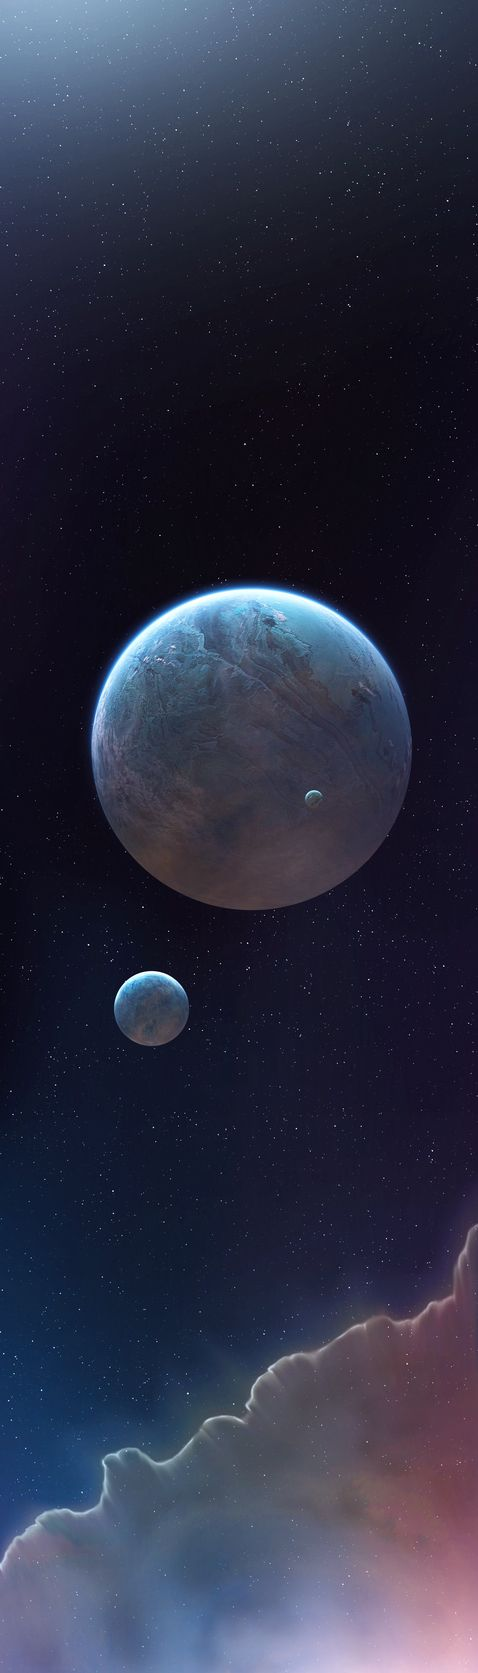 Two Planets Landscape Wallpaper Download, Two Planets Landscape HD ... www.wapdam.in - 360 × 640 - Search by image